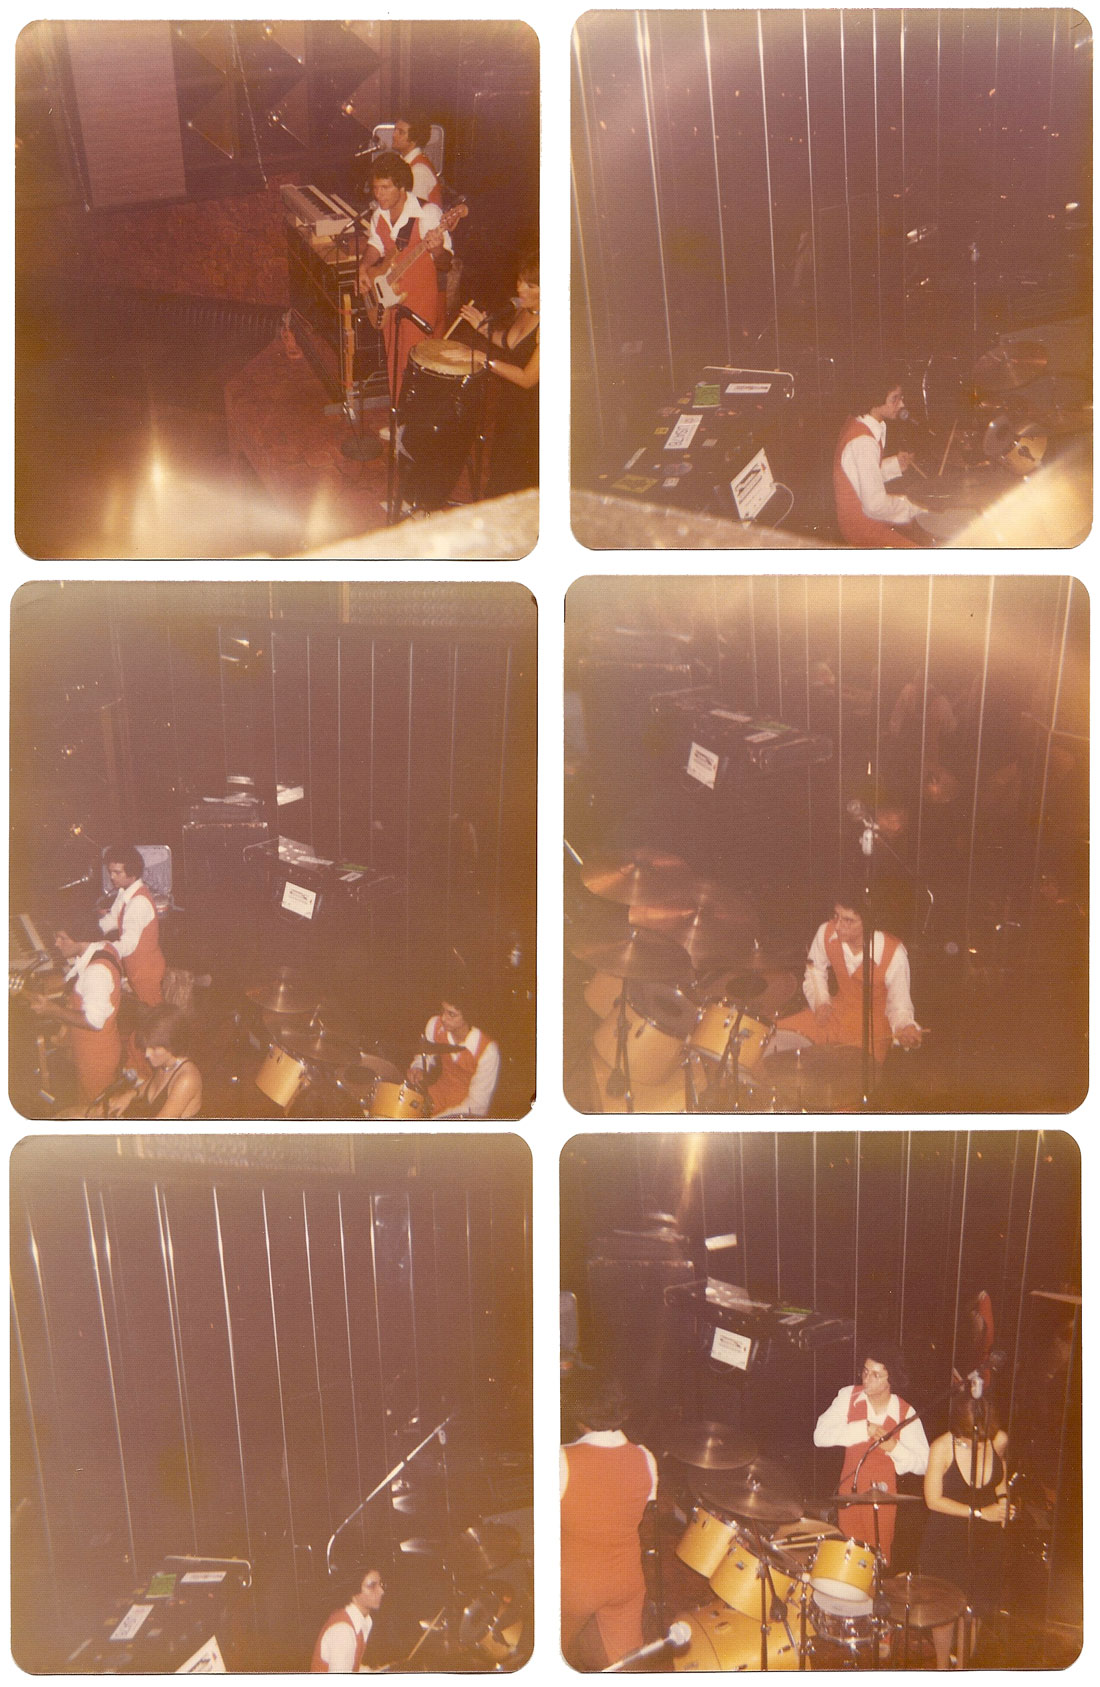 Clockwork performance at Pete & Lenny's on June 28, 1976